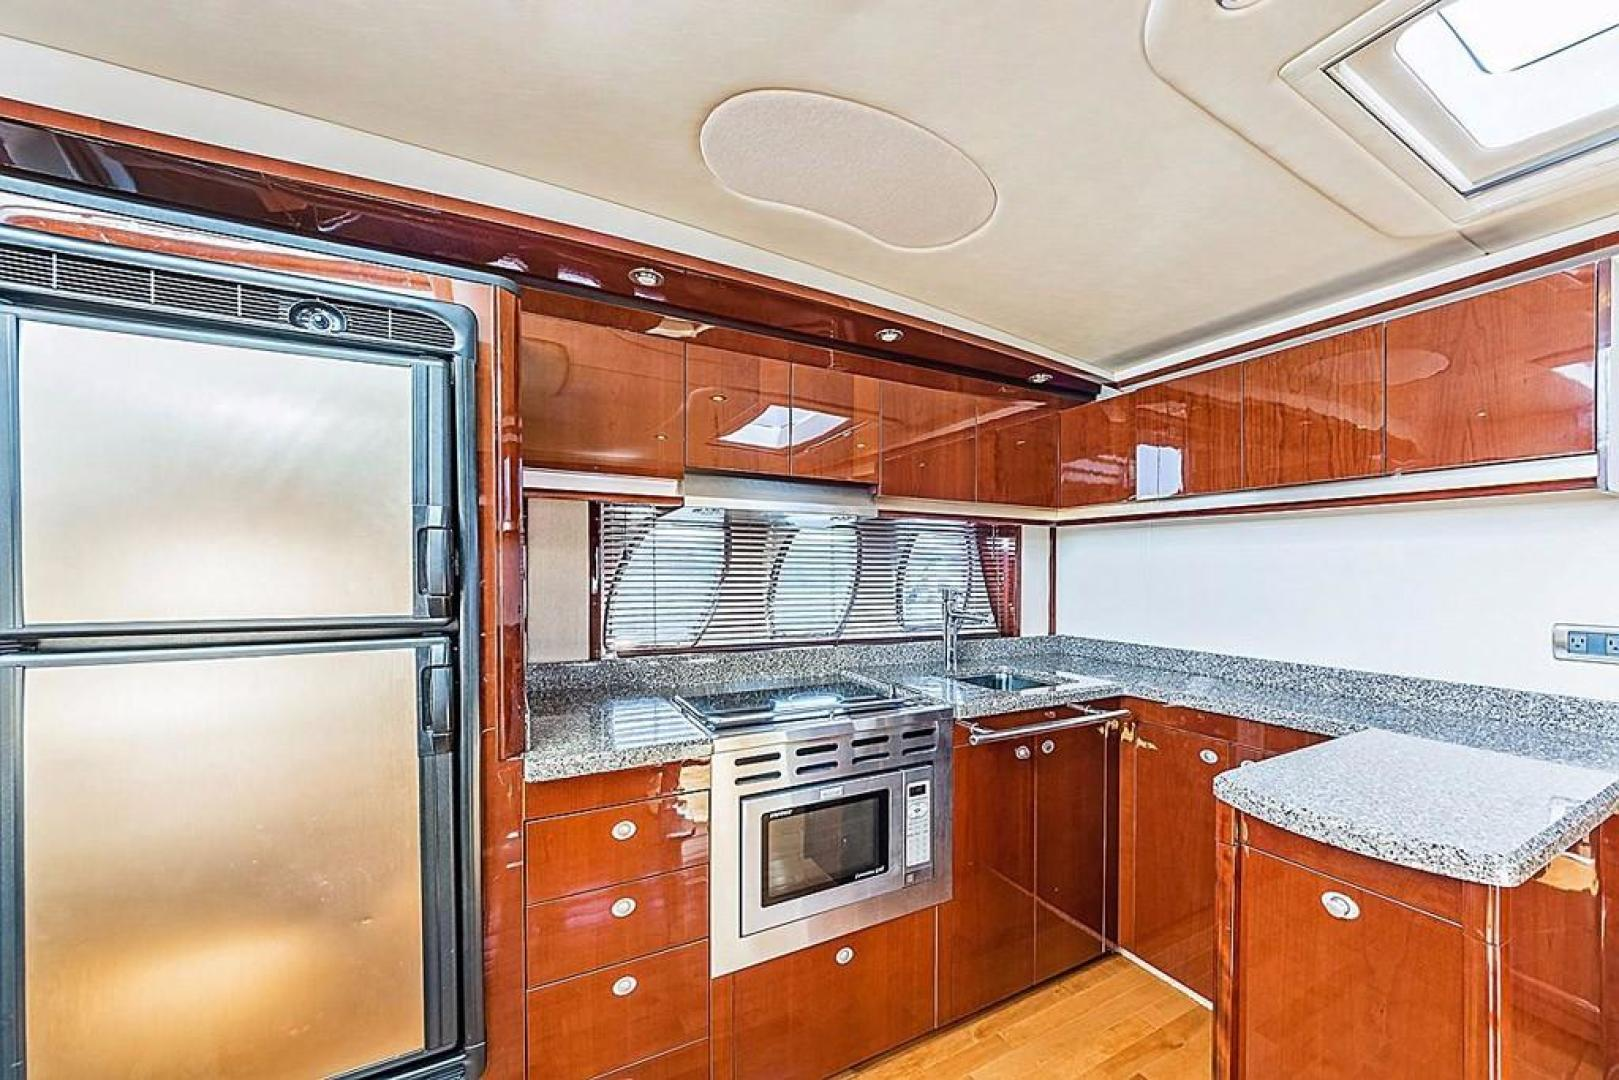 Sea Ray-48 Sundancer 2008-Francesca Coconut Grove-Florida-United States-Galley-918623 | Thumbnail